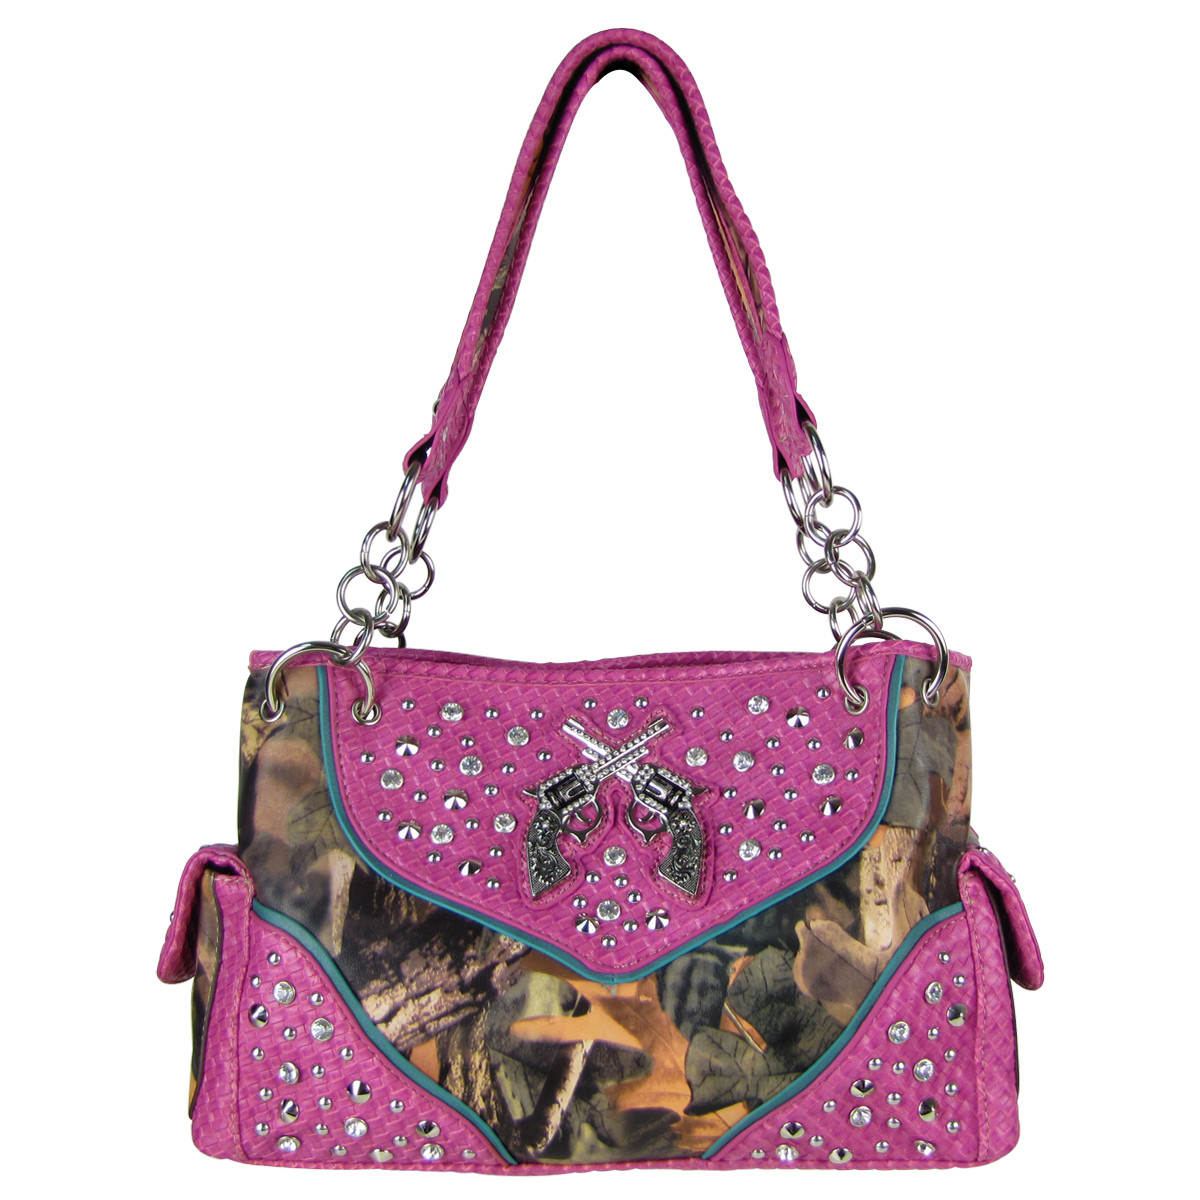 HOT PINK MOSSY CAMO STUDDED RHINESTONE PISTOL LOOK SHOULDER HANDBAG HB1-12860HPK